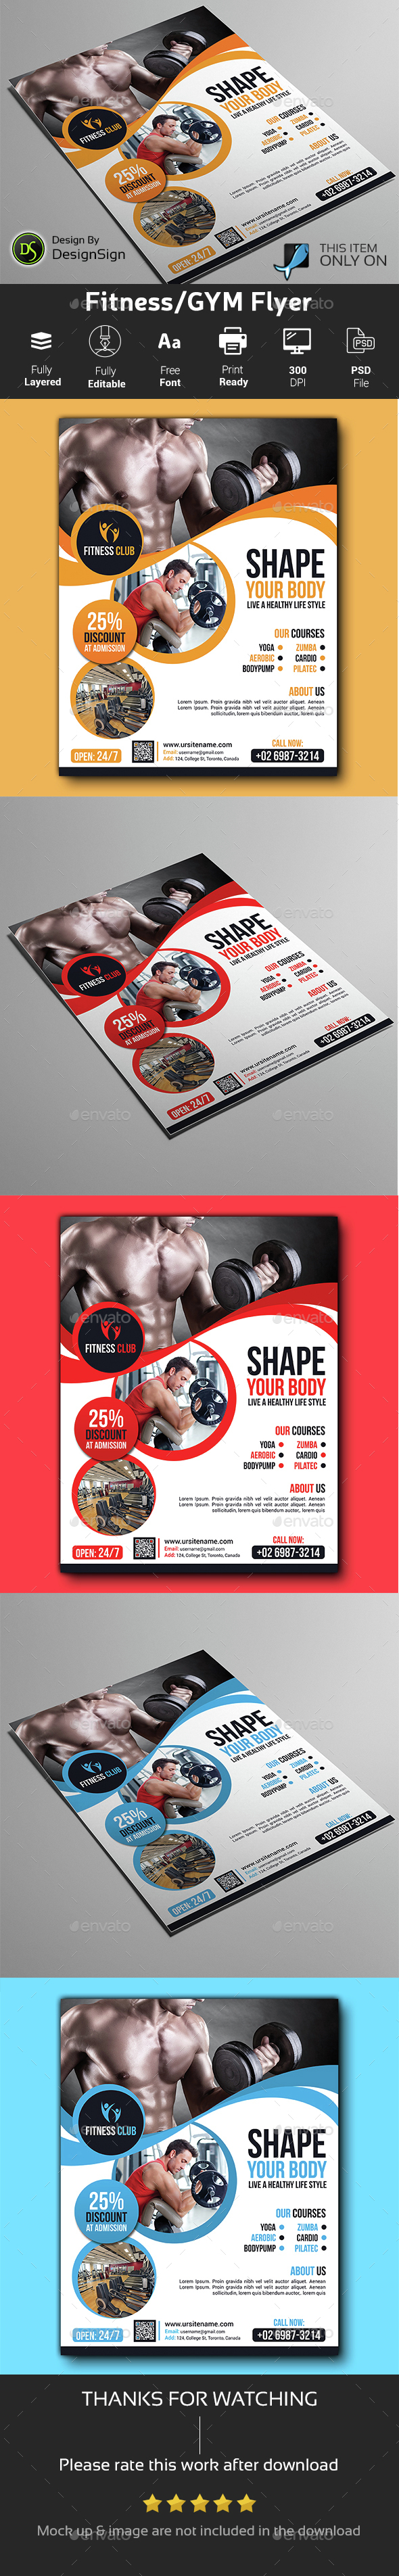 Fitness/ GYM Flyer